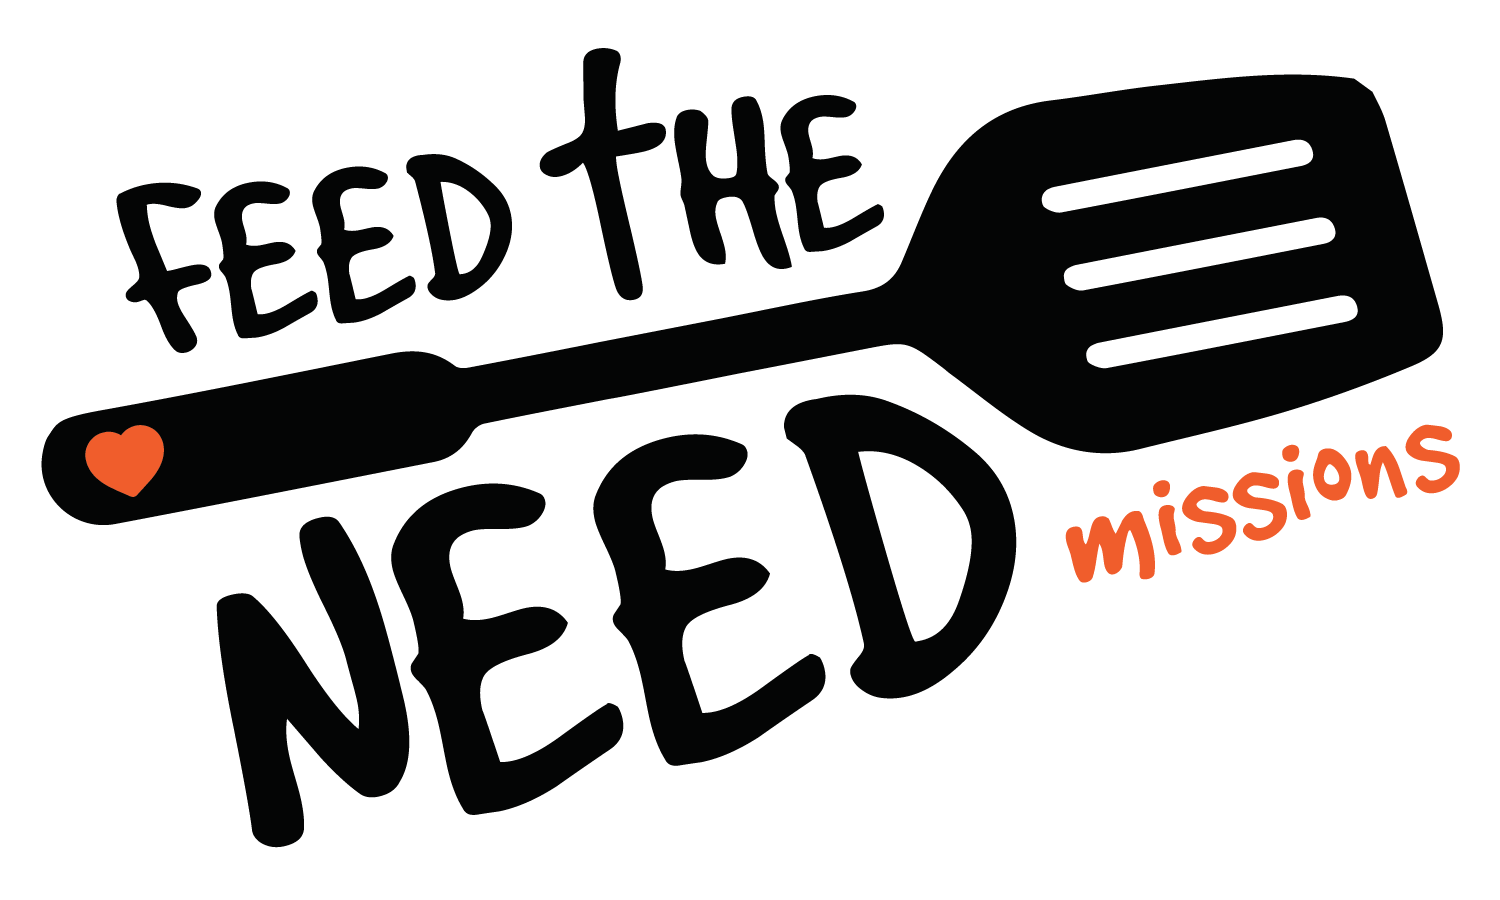 Feed the Need Missions